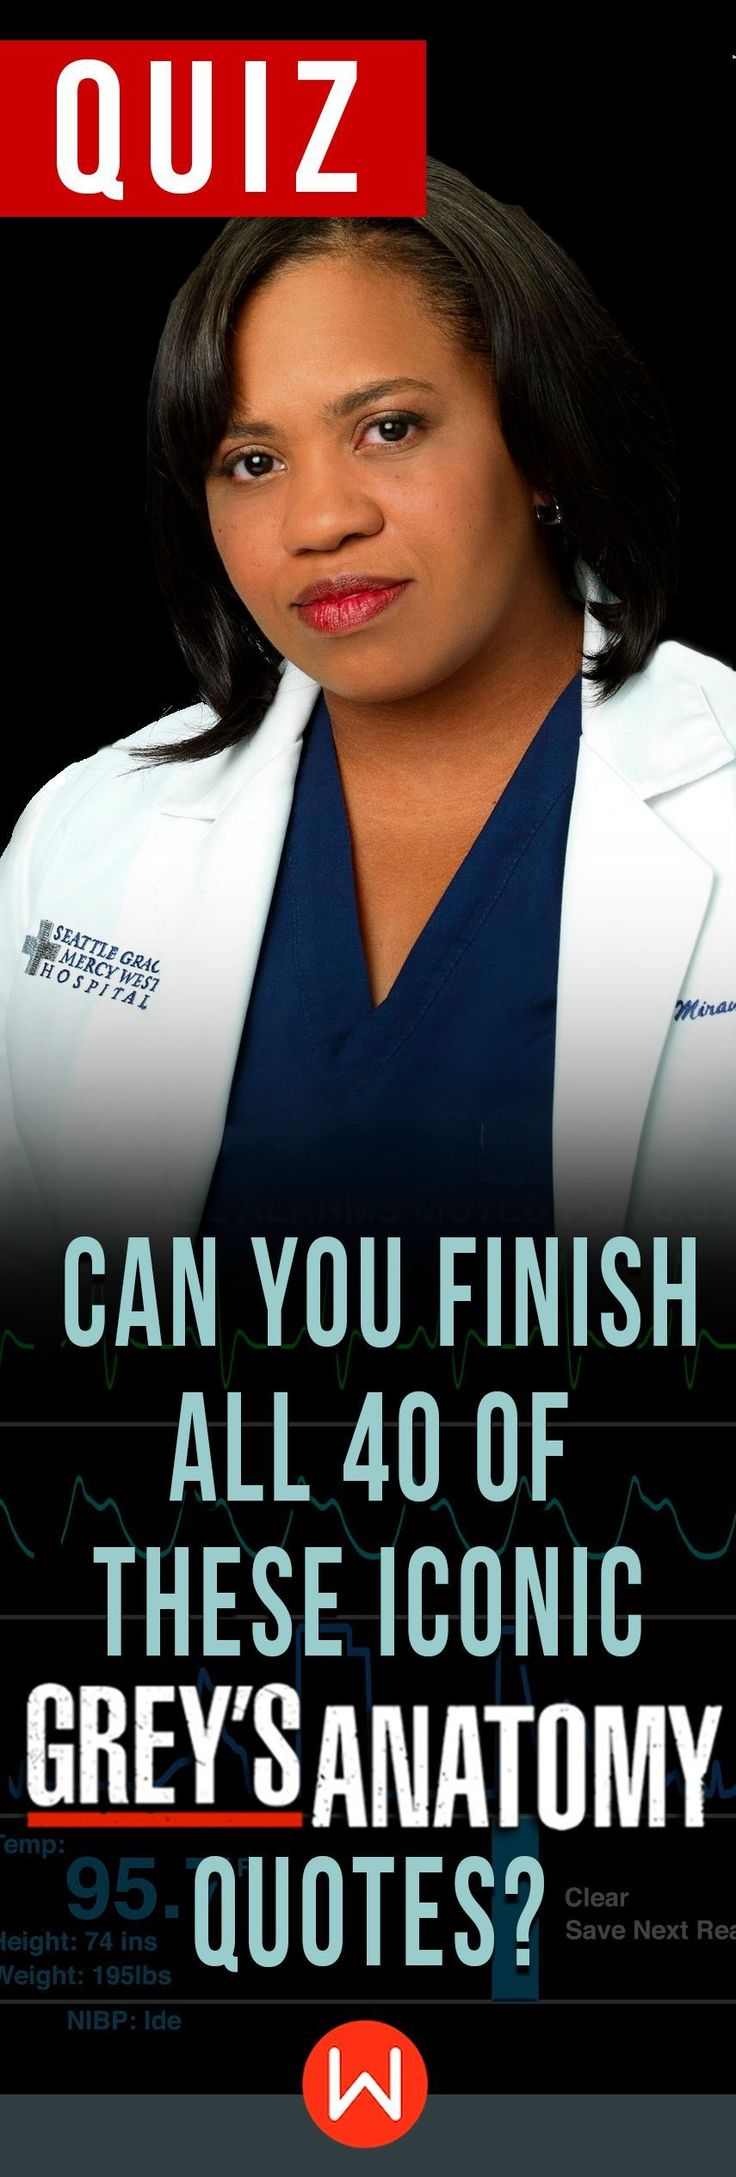 Are you the ultimate Grey's fan? Grey's Anatomy Quote Trivia. Can you identify who said these Grey's Anatomy quotes? How's your Grey's Anatomy doing? Test yourself on this GA trivia test. Miranda Bailey is looking at you! Shondaland, Shonda Rhimes, Grey's Anatomy quotes, GA quiz.